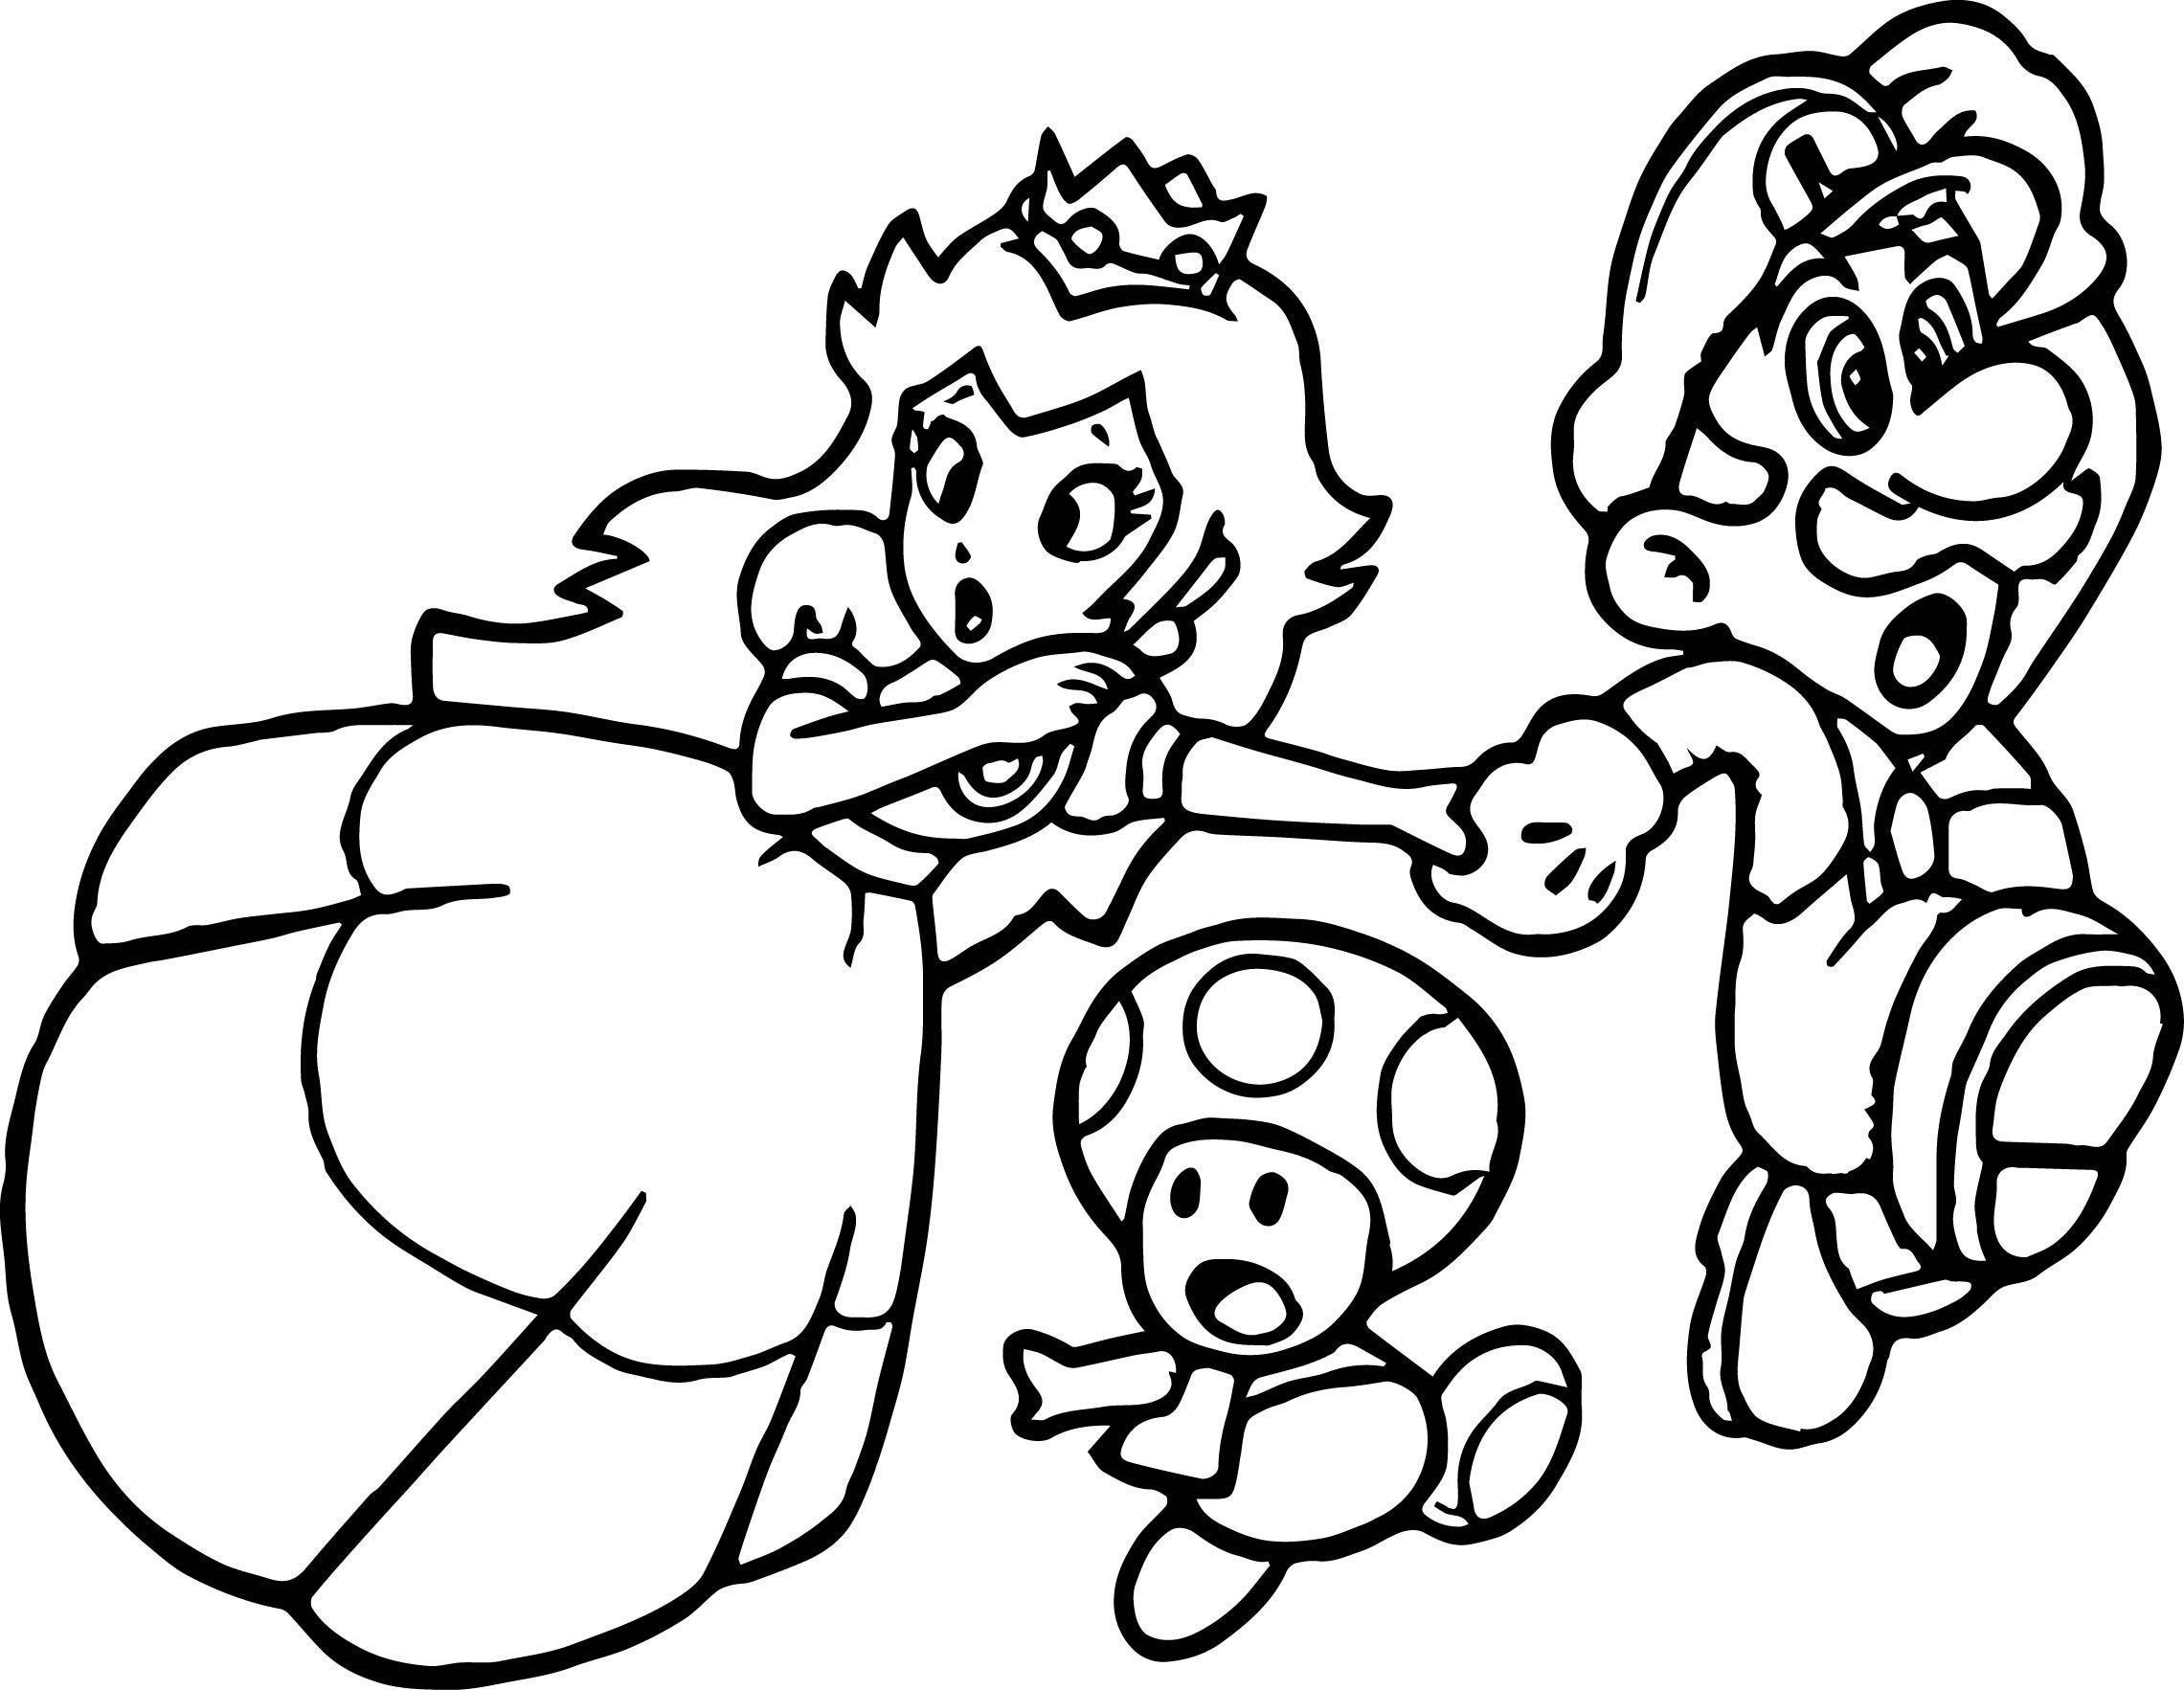 Super Mario Coloring Pages Elegant Cute Yoshi Coloring Pages Luxury Super Mario Princess Super Mario Coloring Pages Mario Coloring Pages Cartoon Coloring Pages